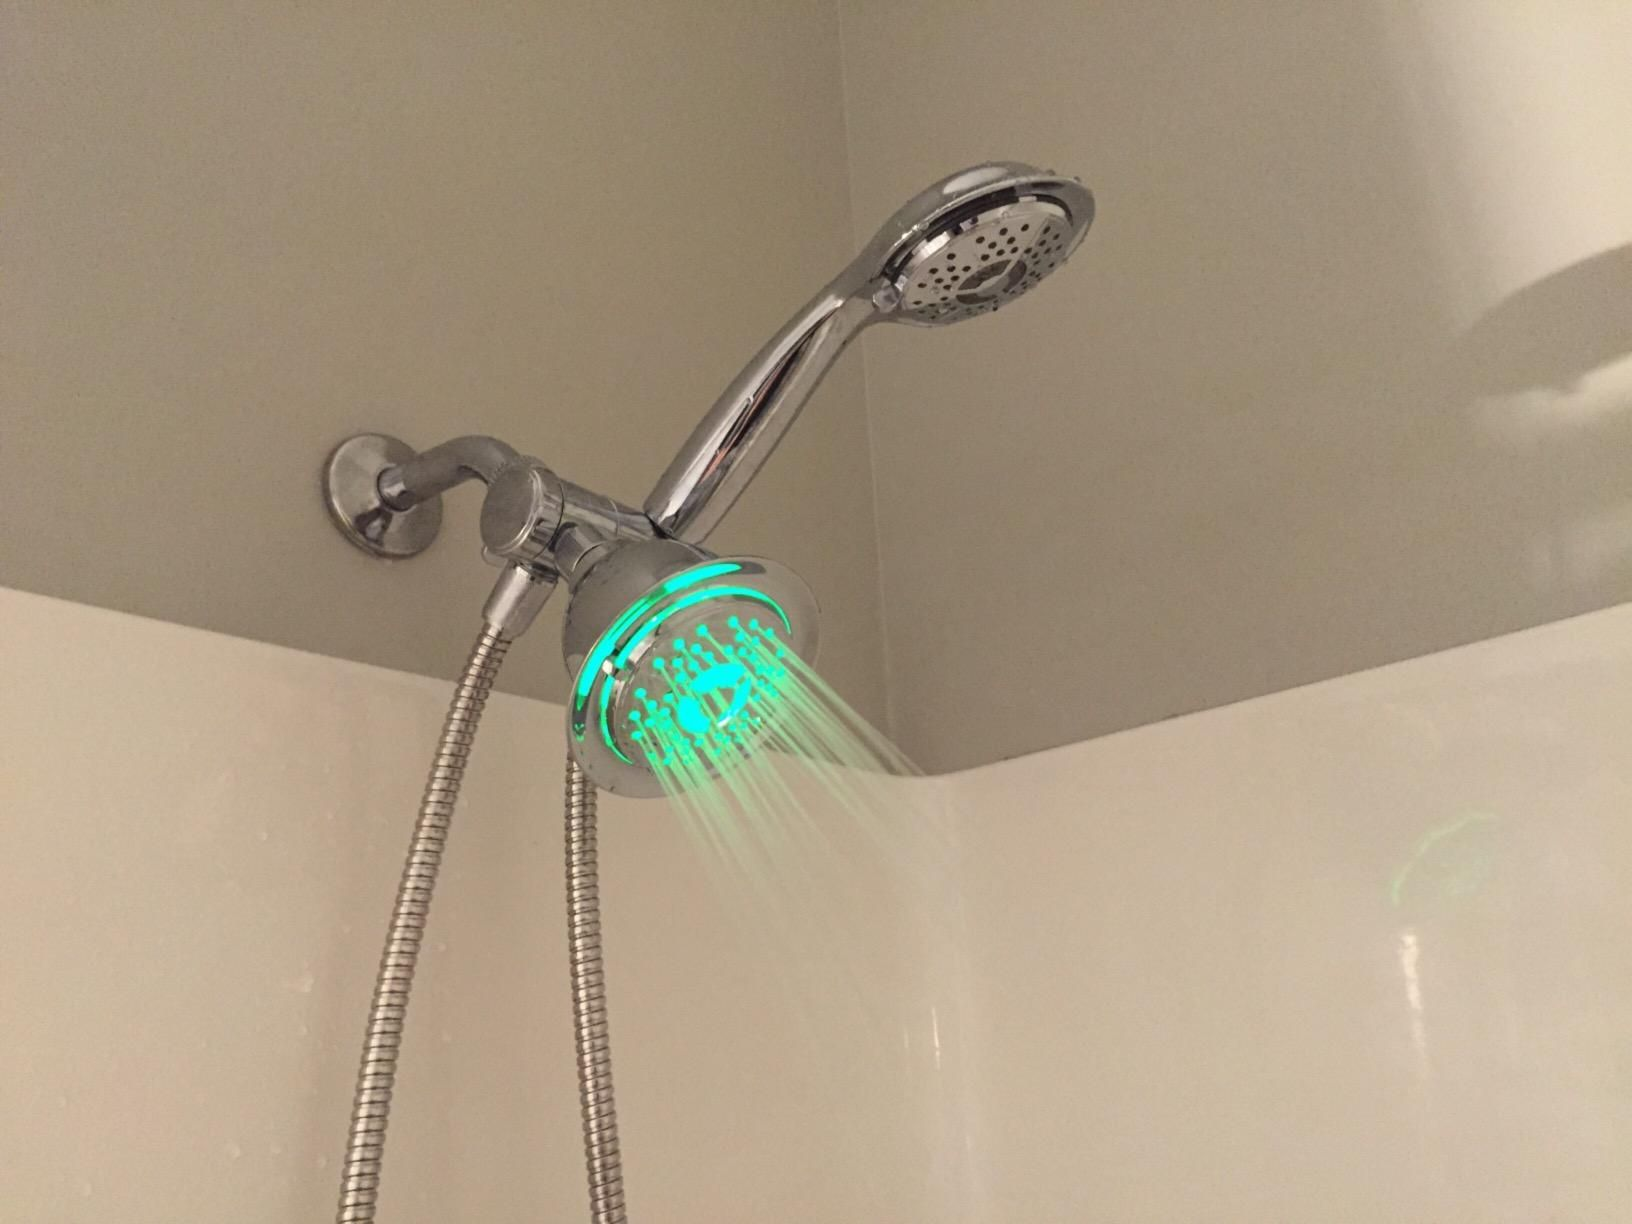 Best Led Shower Head Reviews In 2020 Led Shower Head Shower Head Reviews Shower Heads